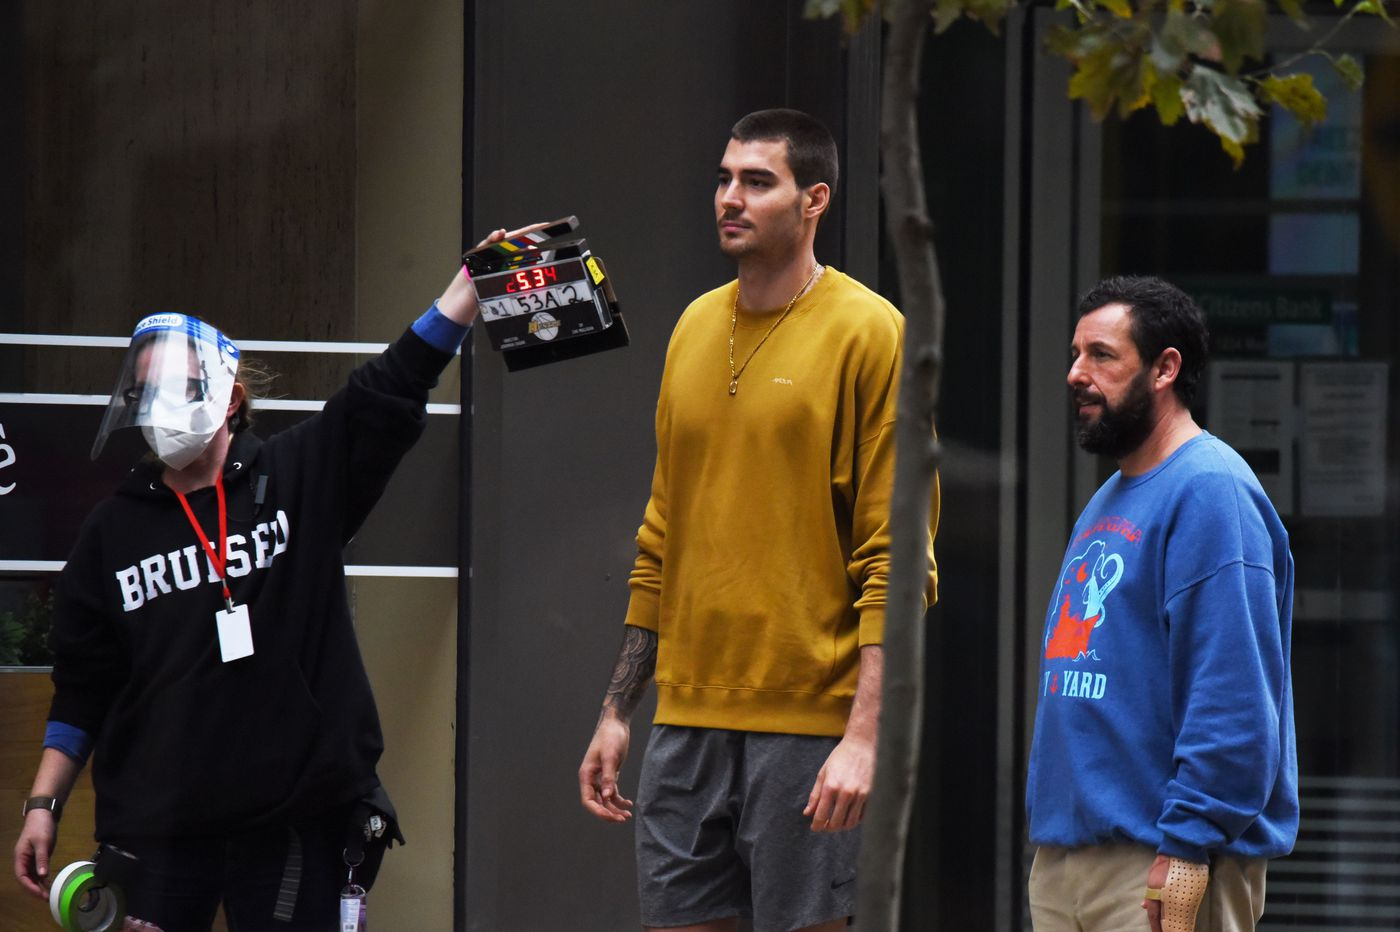 Here's where Adam Sandler is hanging out while he films a movie in Philly